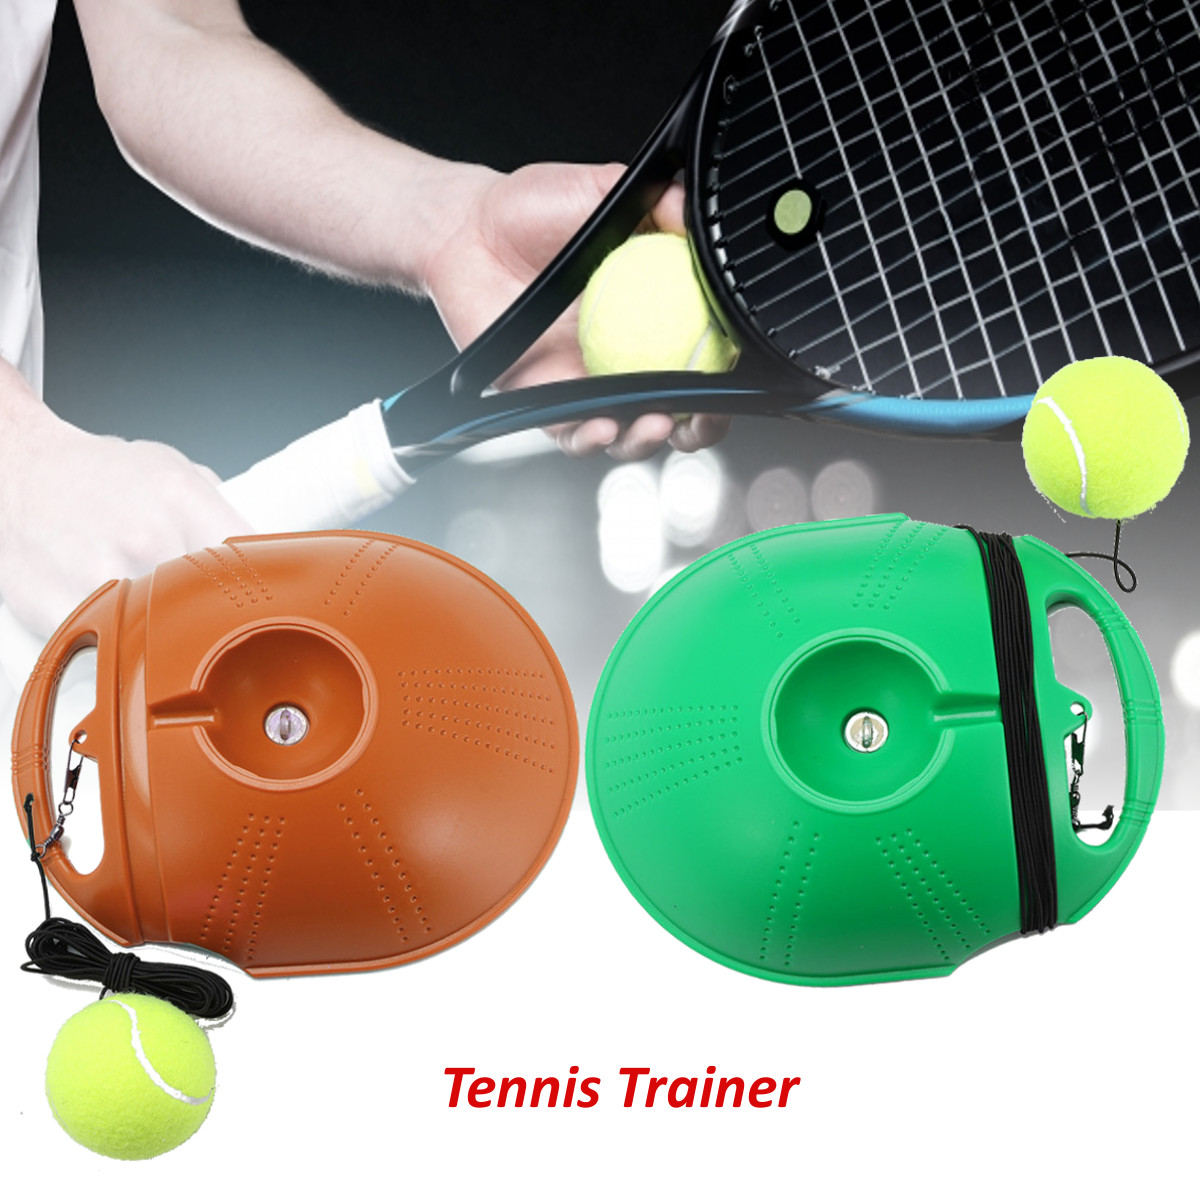 Tennis Trainer and Self-study Tennis Training Tool with Rebound Balls and Baseboard 3